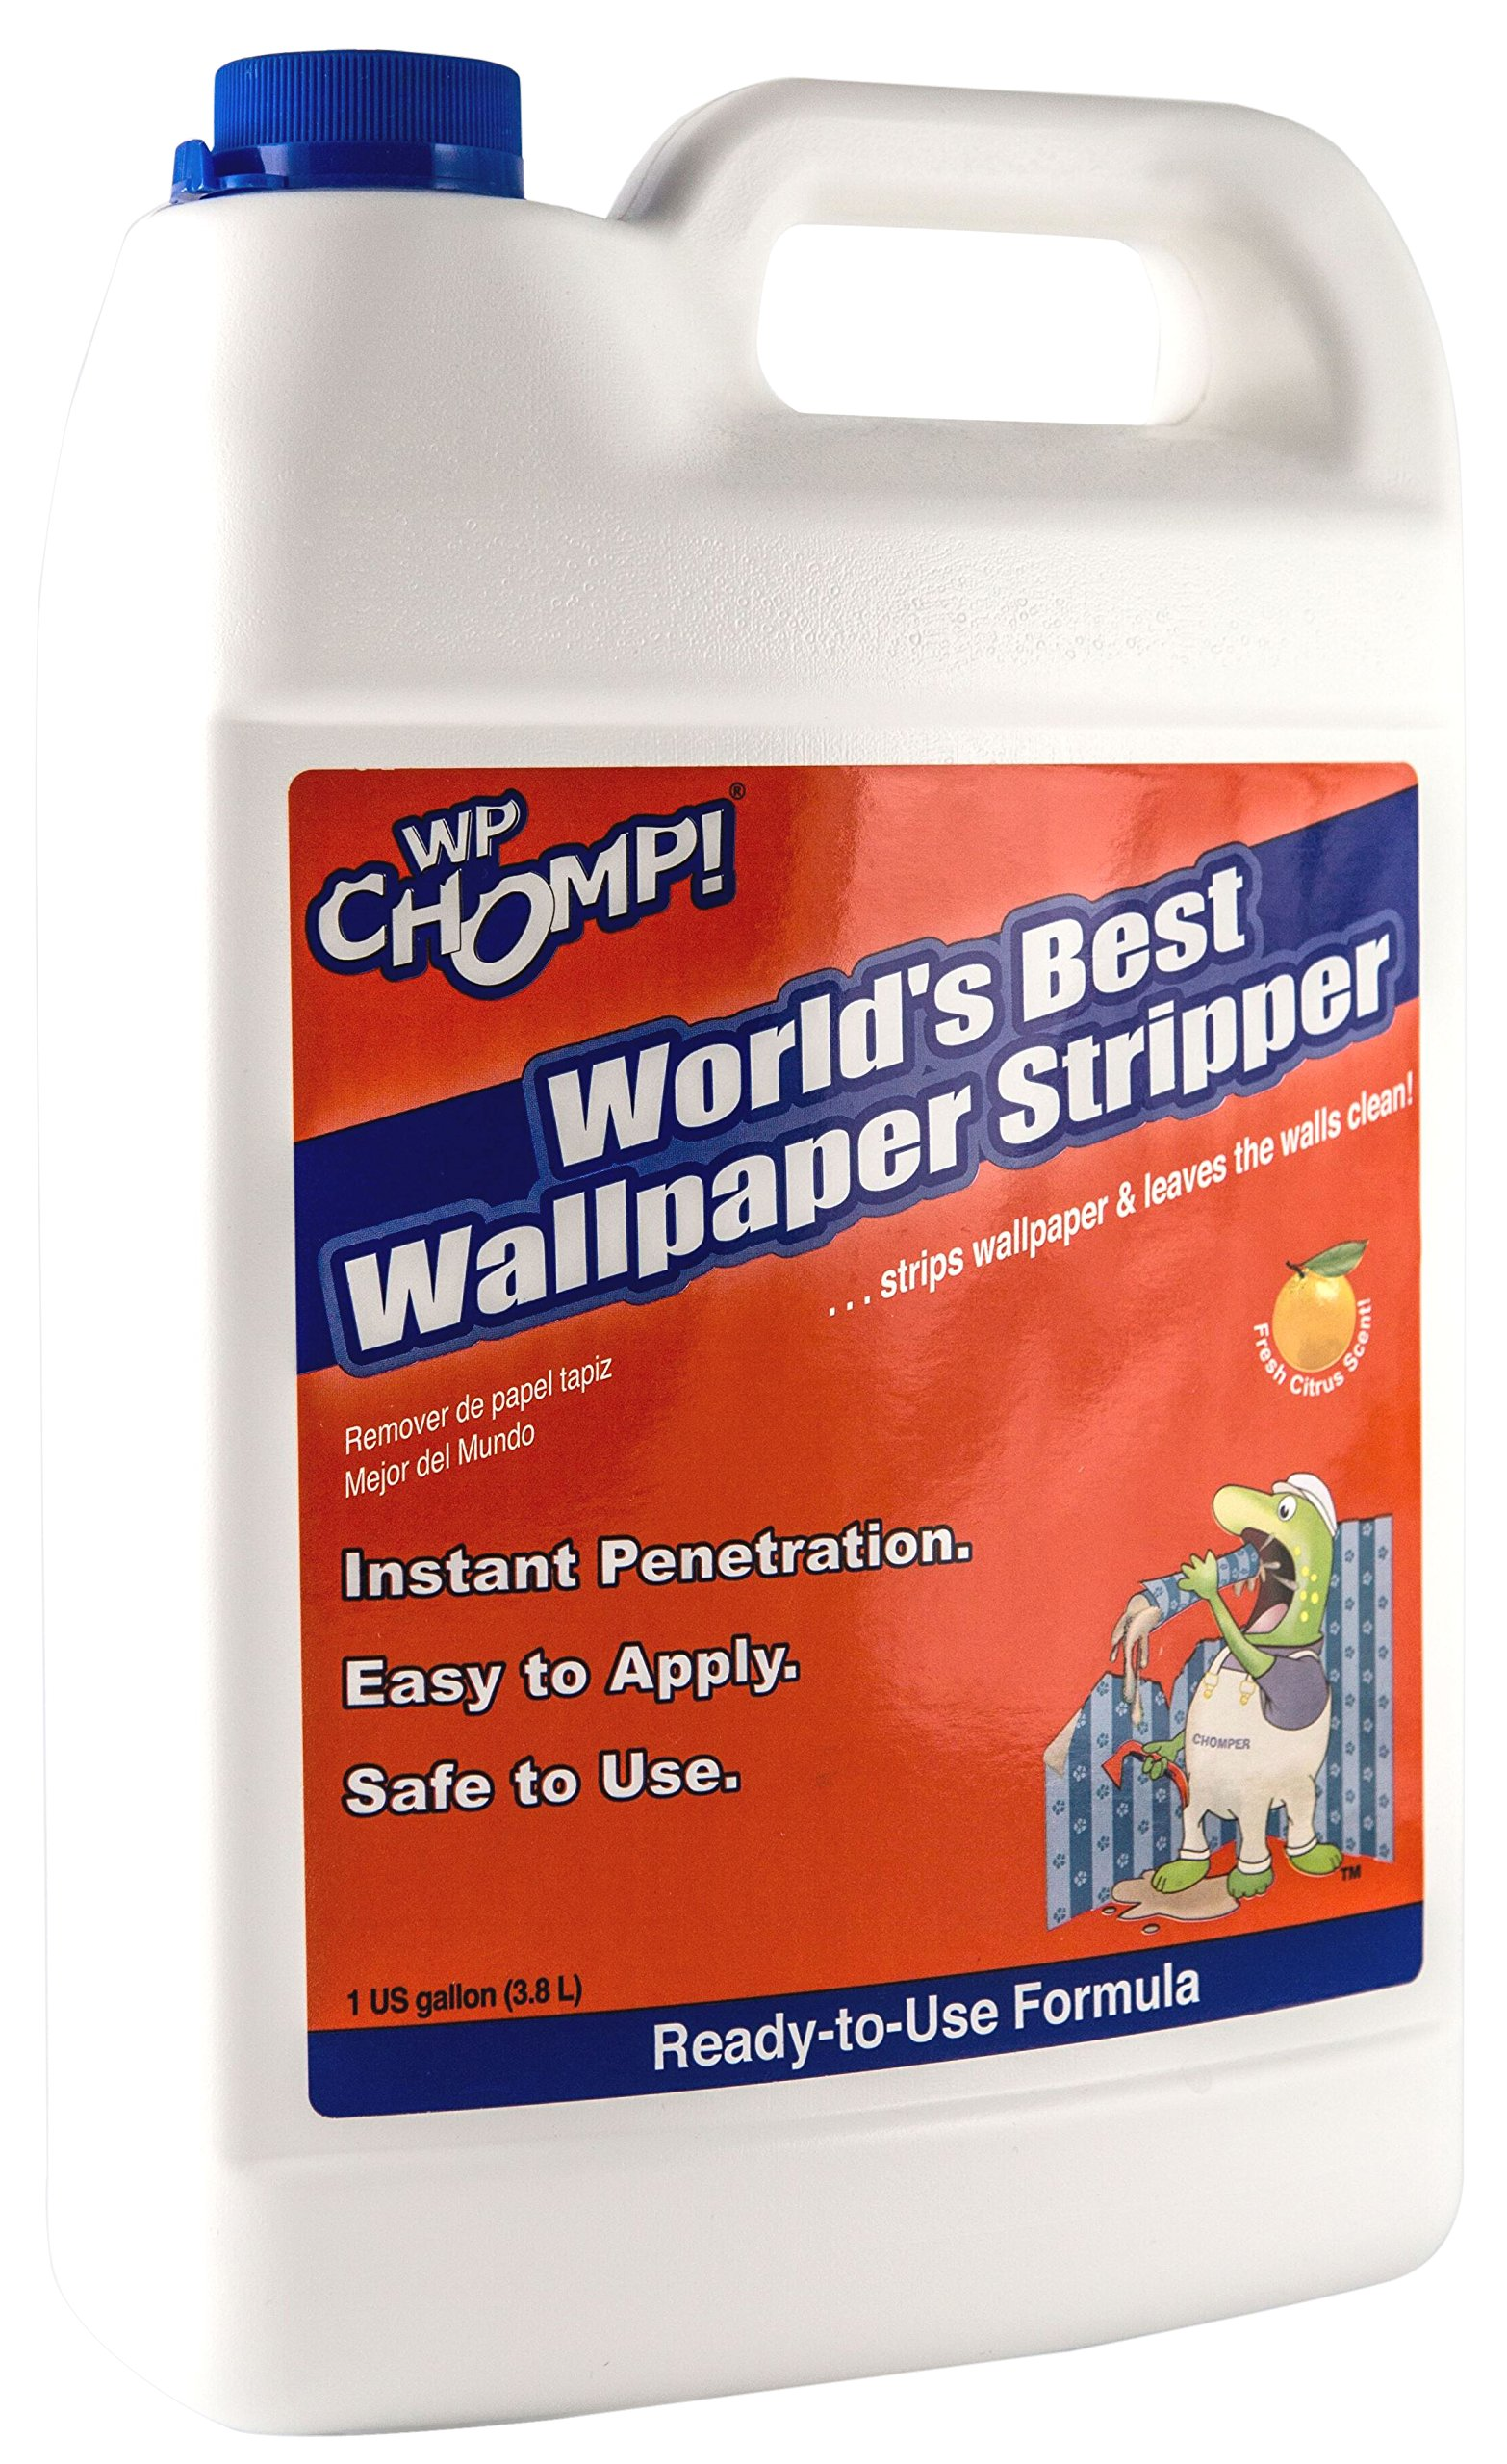 WP Chomp World's Best Wallpaper Stripper: and Sticky Paste Remover, Citrus Scent 1 Gallon by WP Chomp